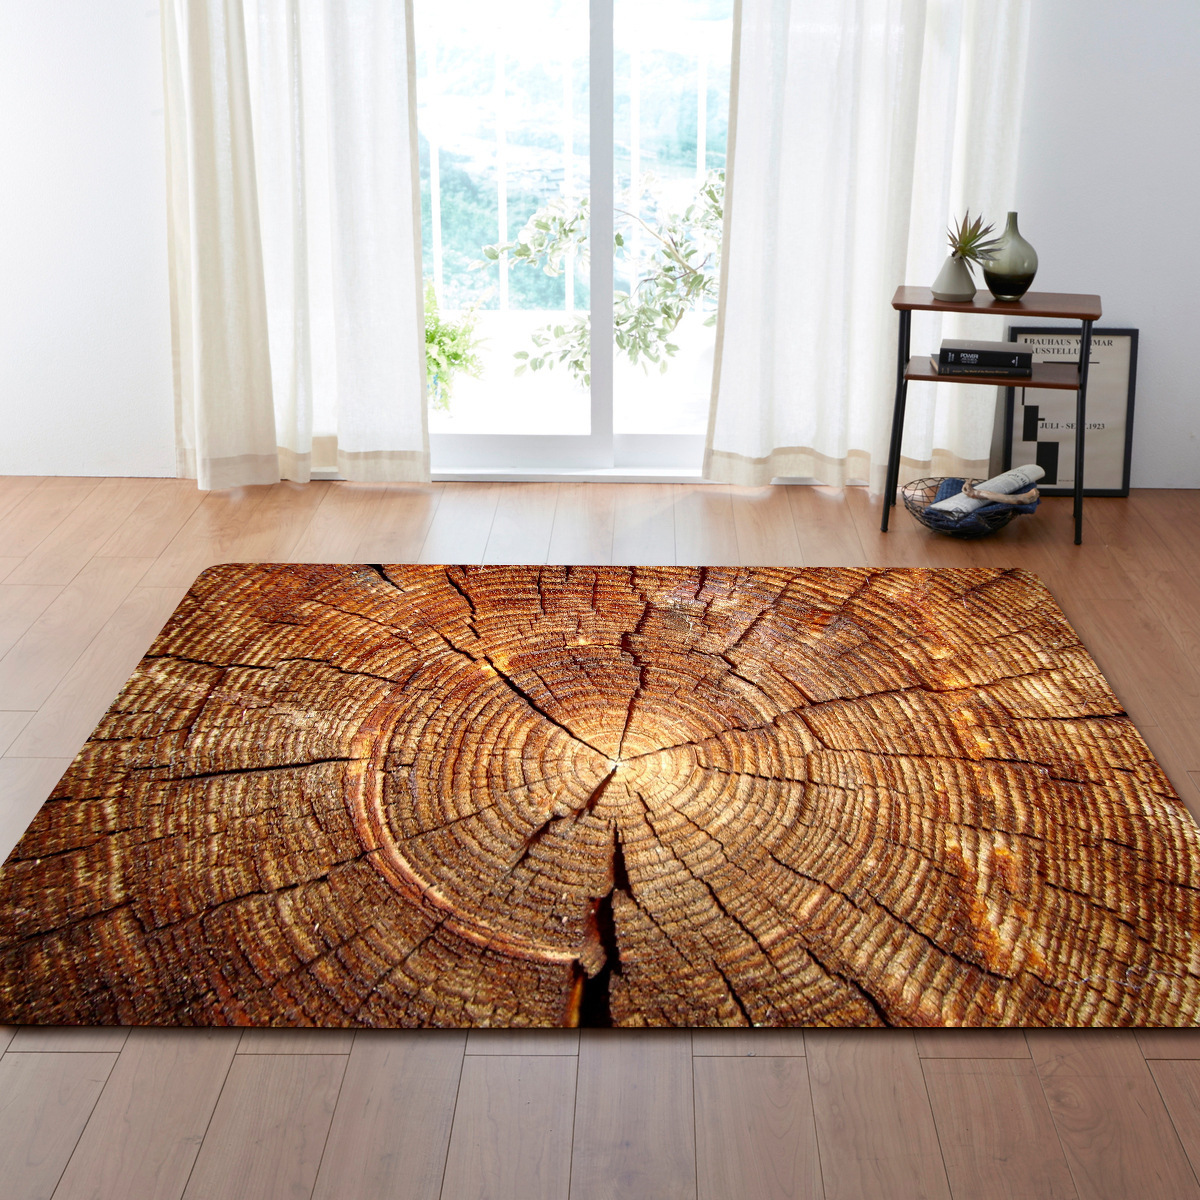 DeMissir 3D Dry Wooden Pattern Print Large Carpet For Living Room Bedroom Pad Children Pay Mat tapetes rug tapis tapete criativo